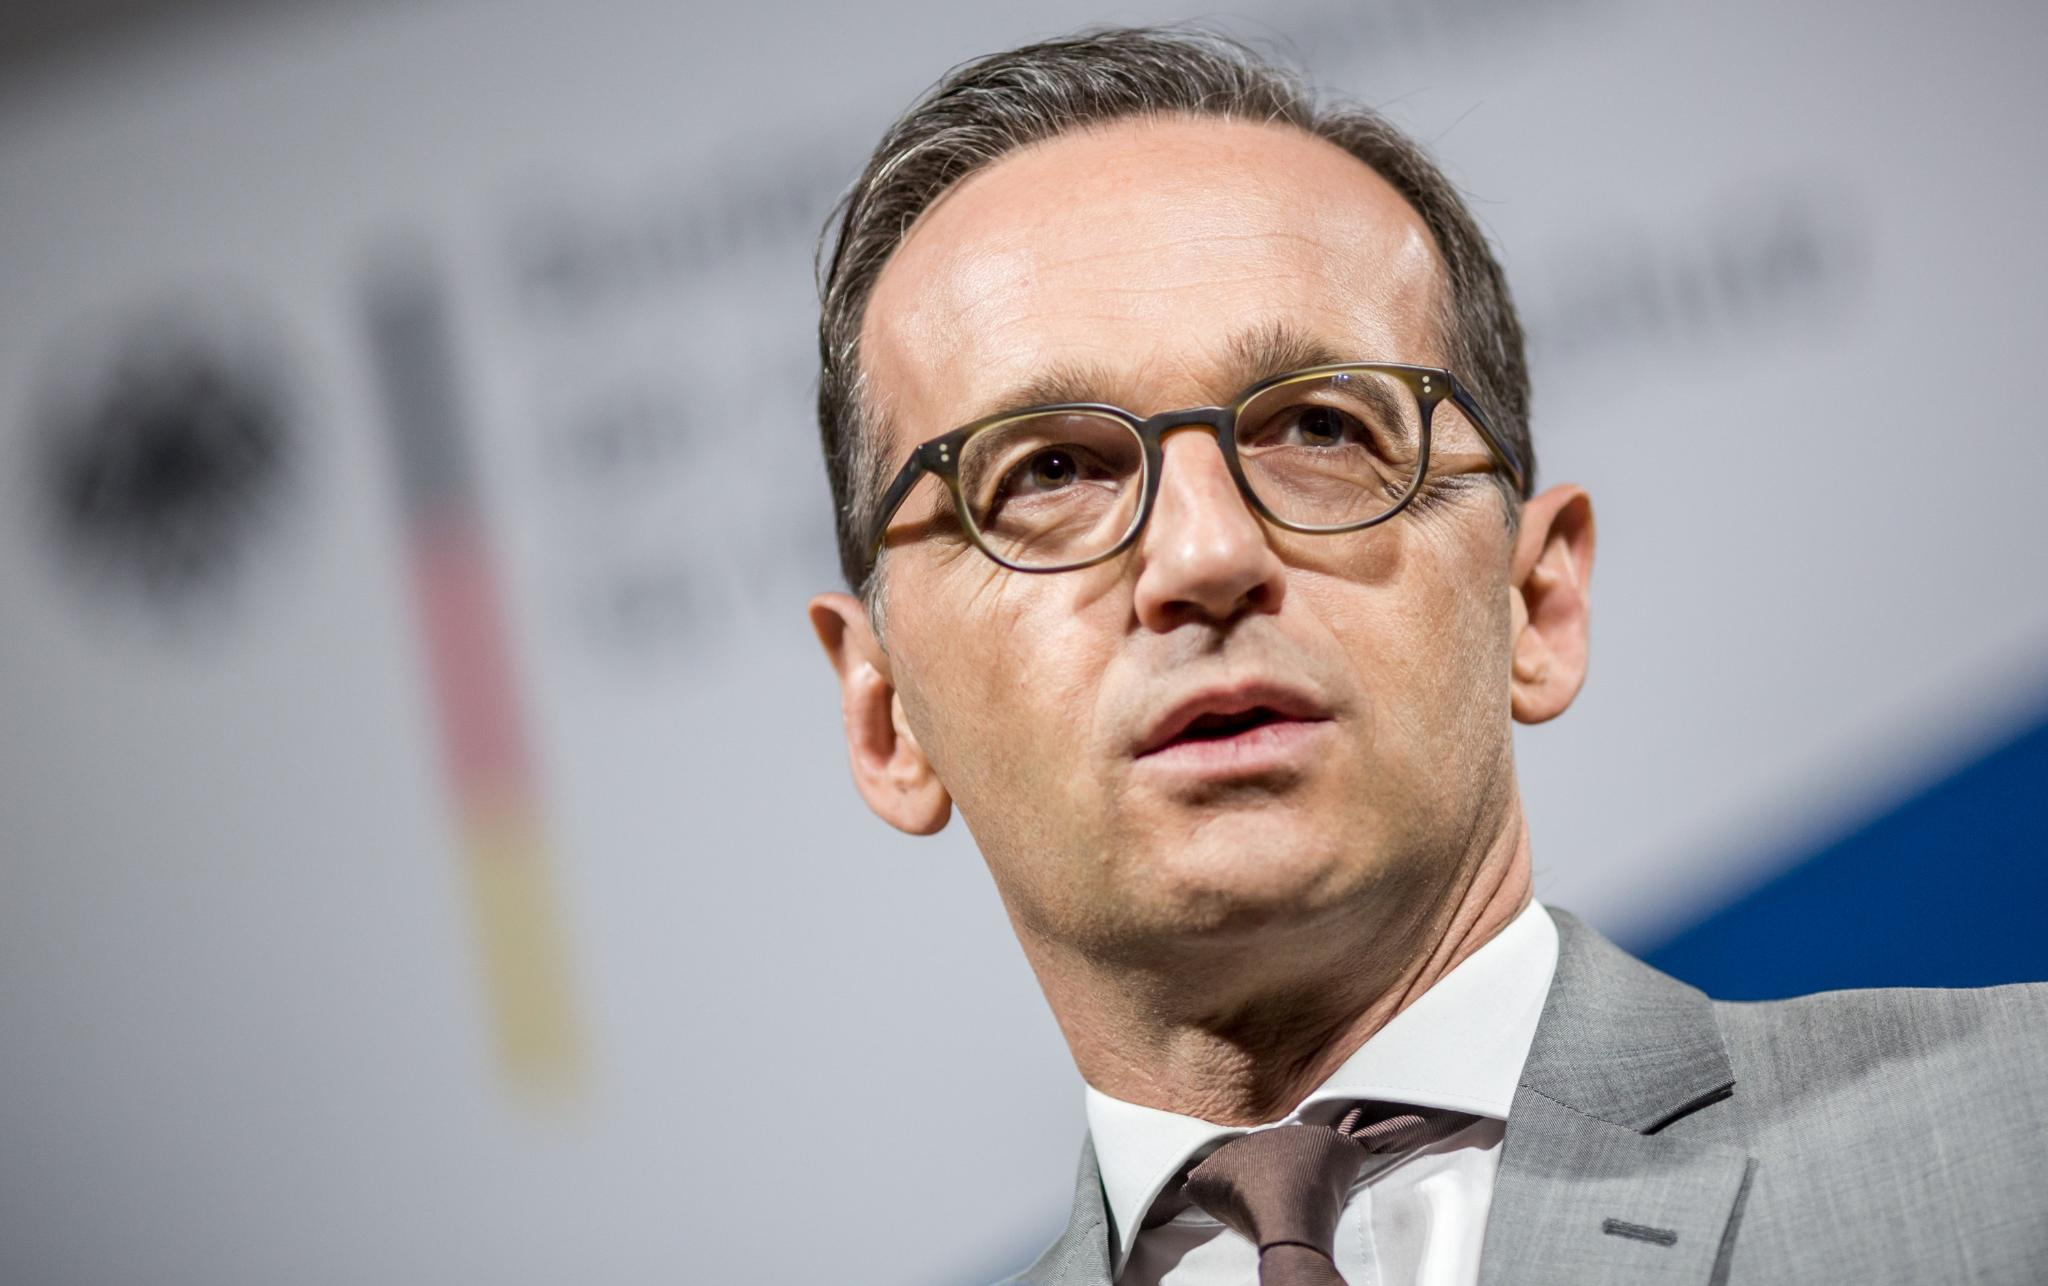 German foreign minister says fascism has not been completely eradicated